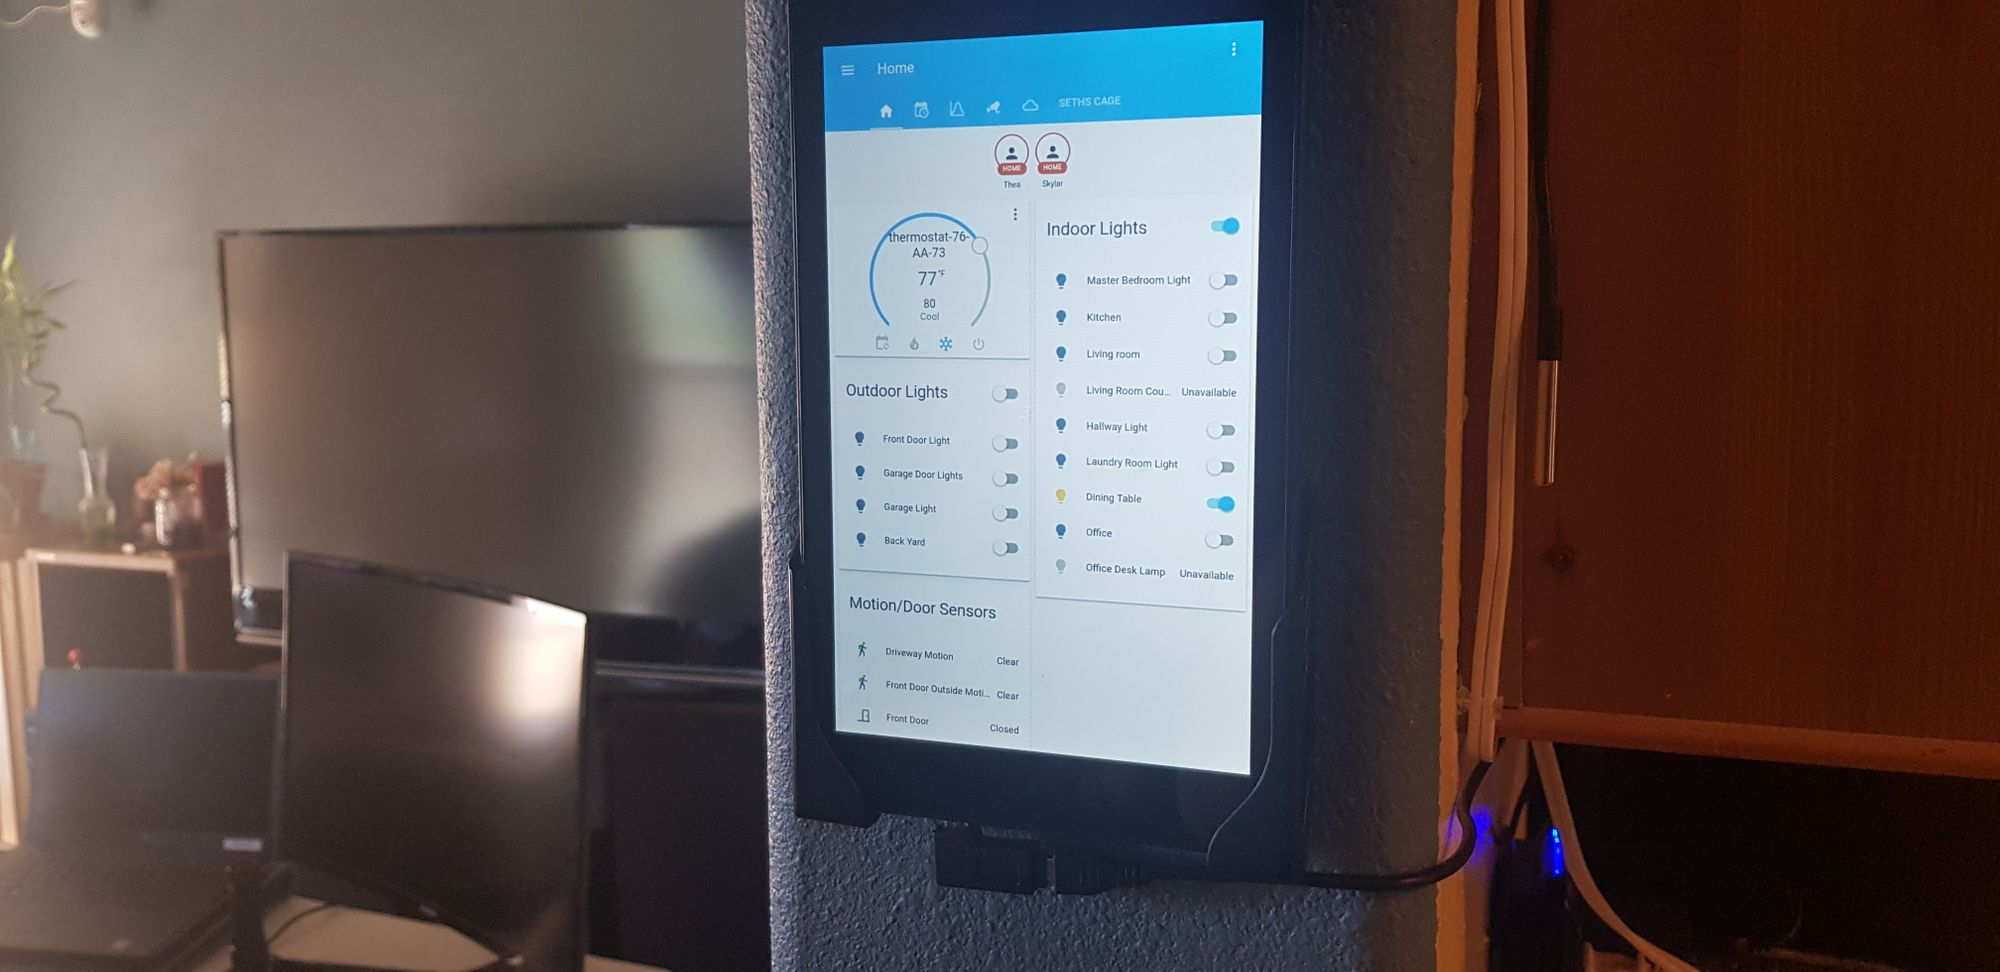 Wall mounted tablet running Home Assistant